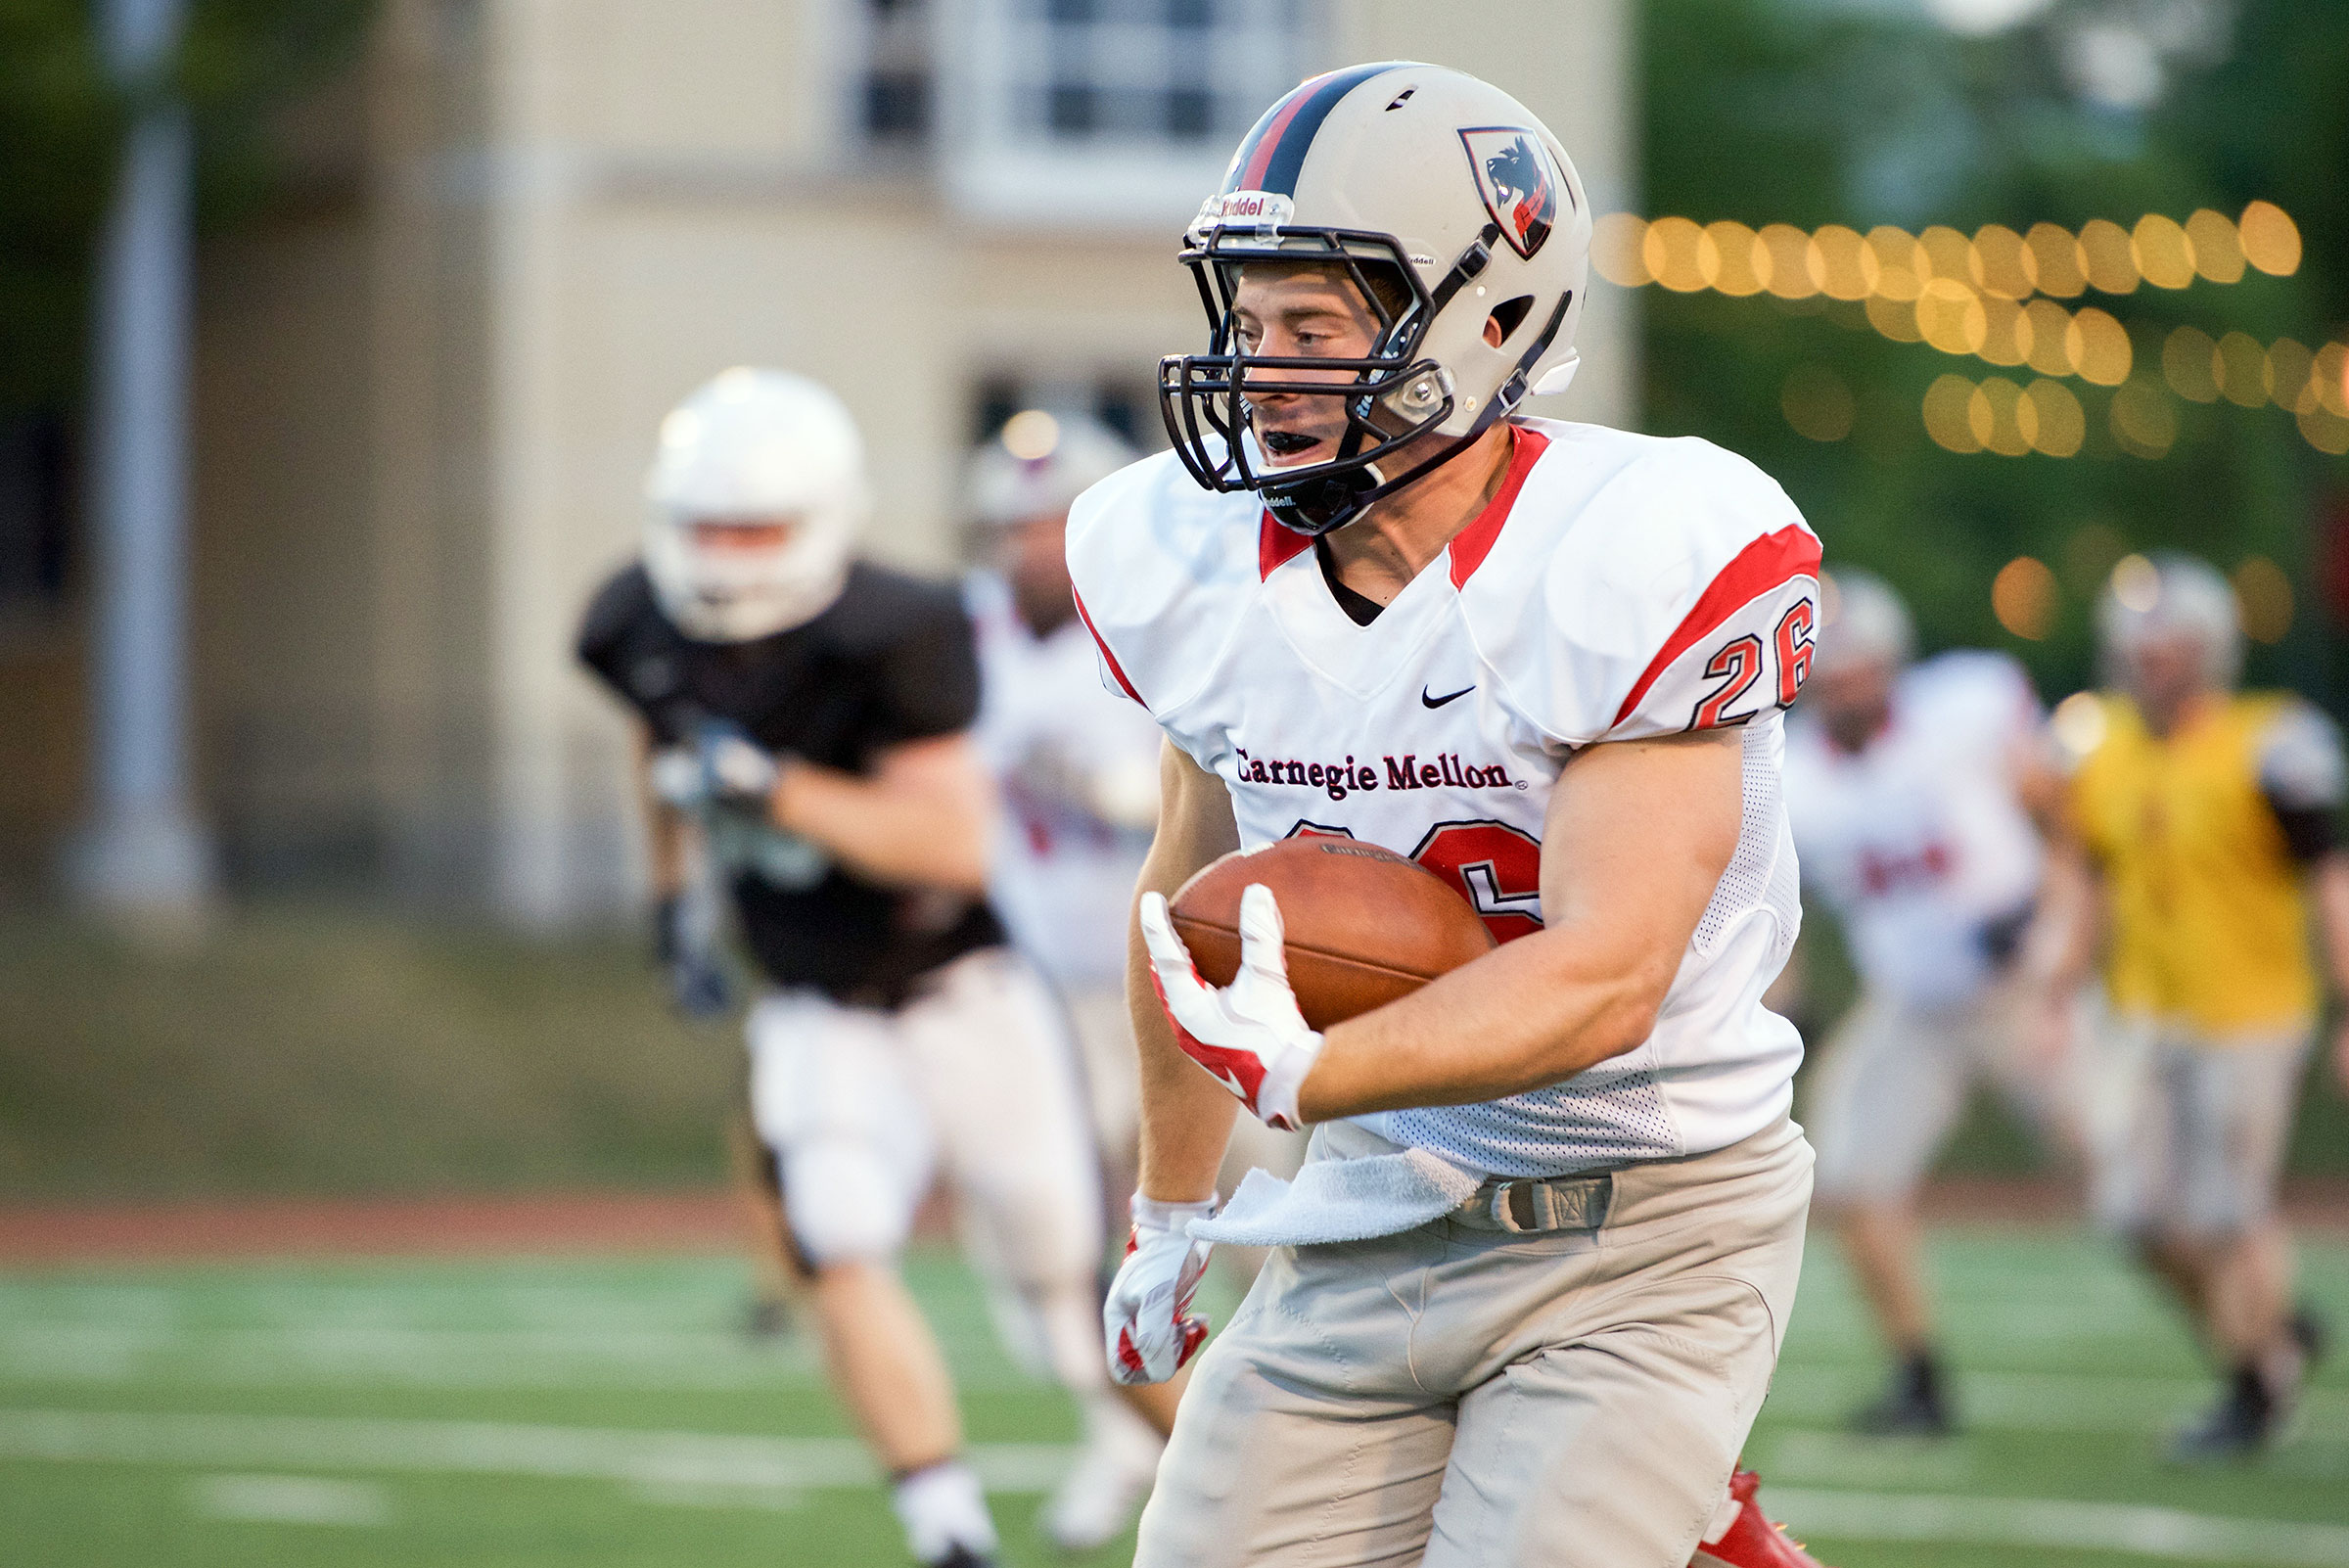 Junior running back Mike Minjock carries the ball. (credit: Staff Photographer)